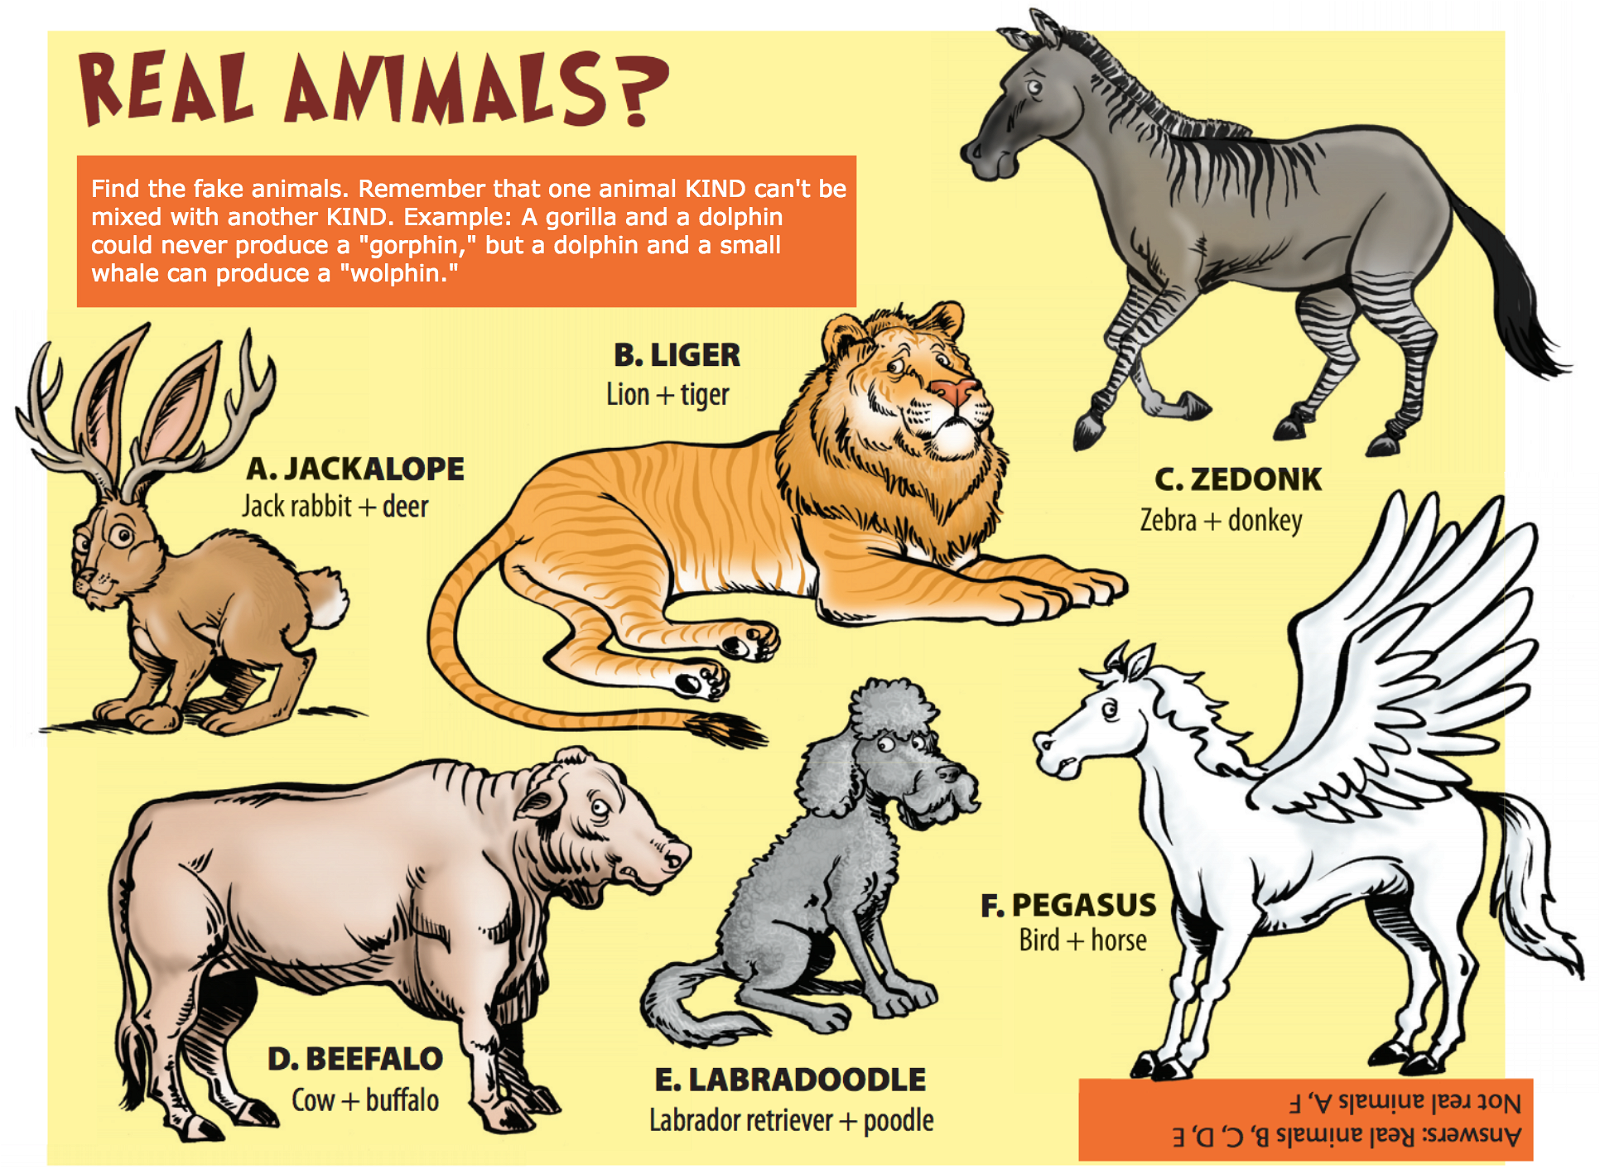 Real Animals?